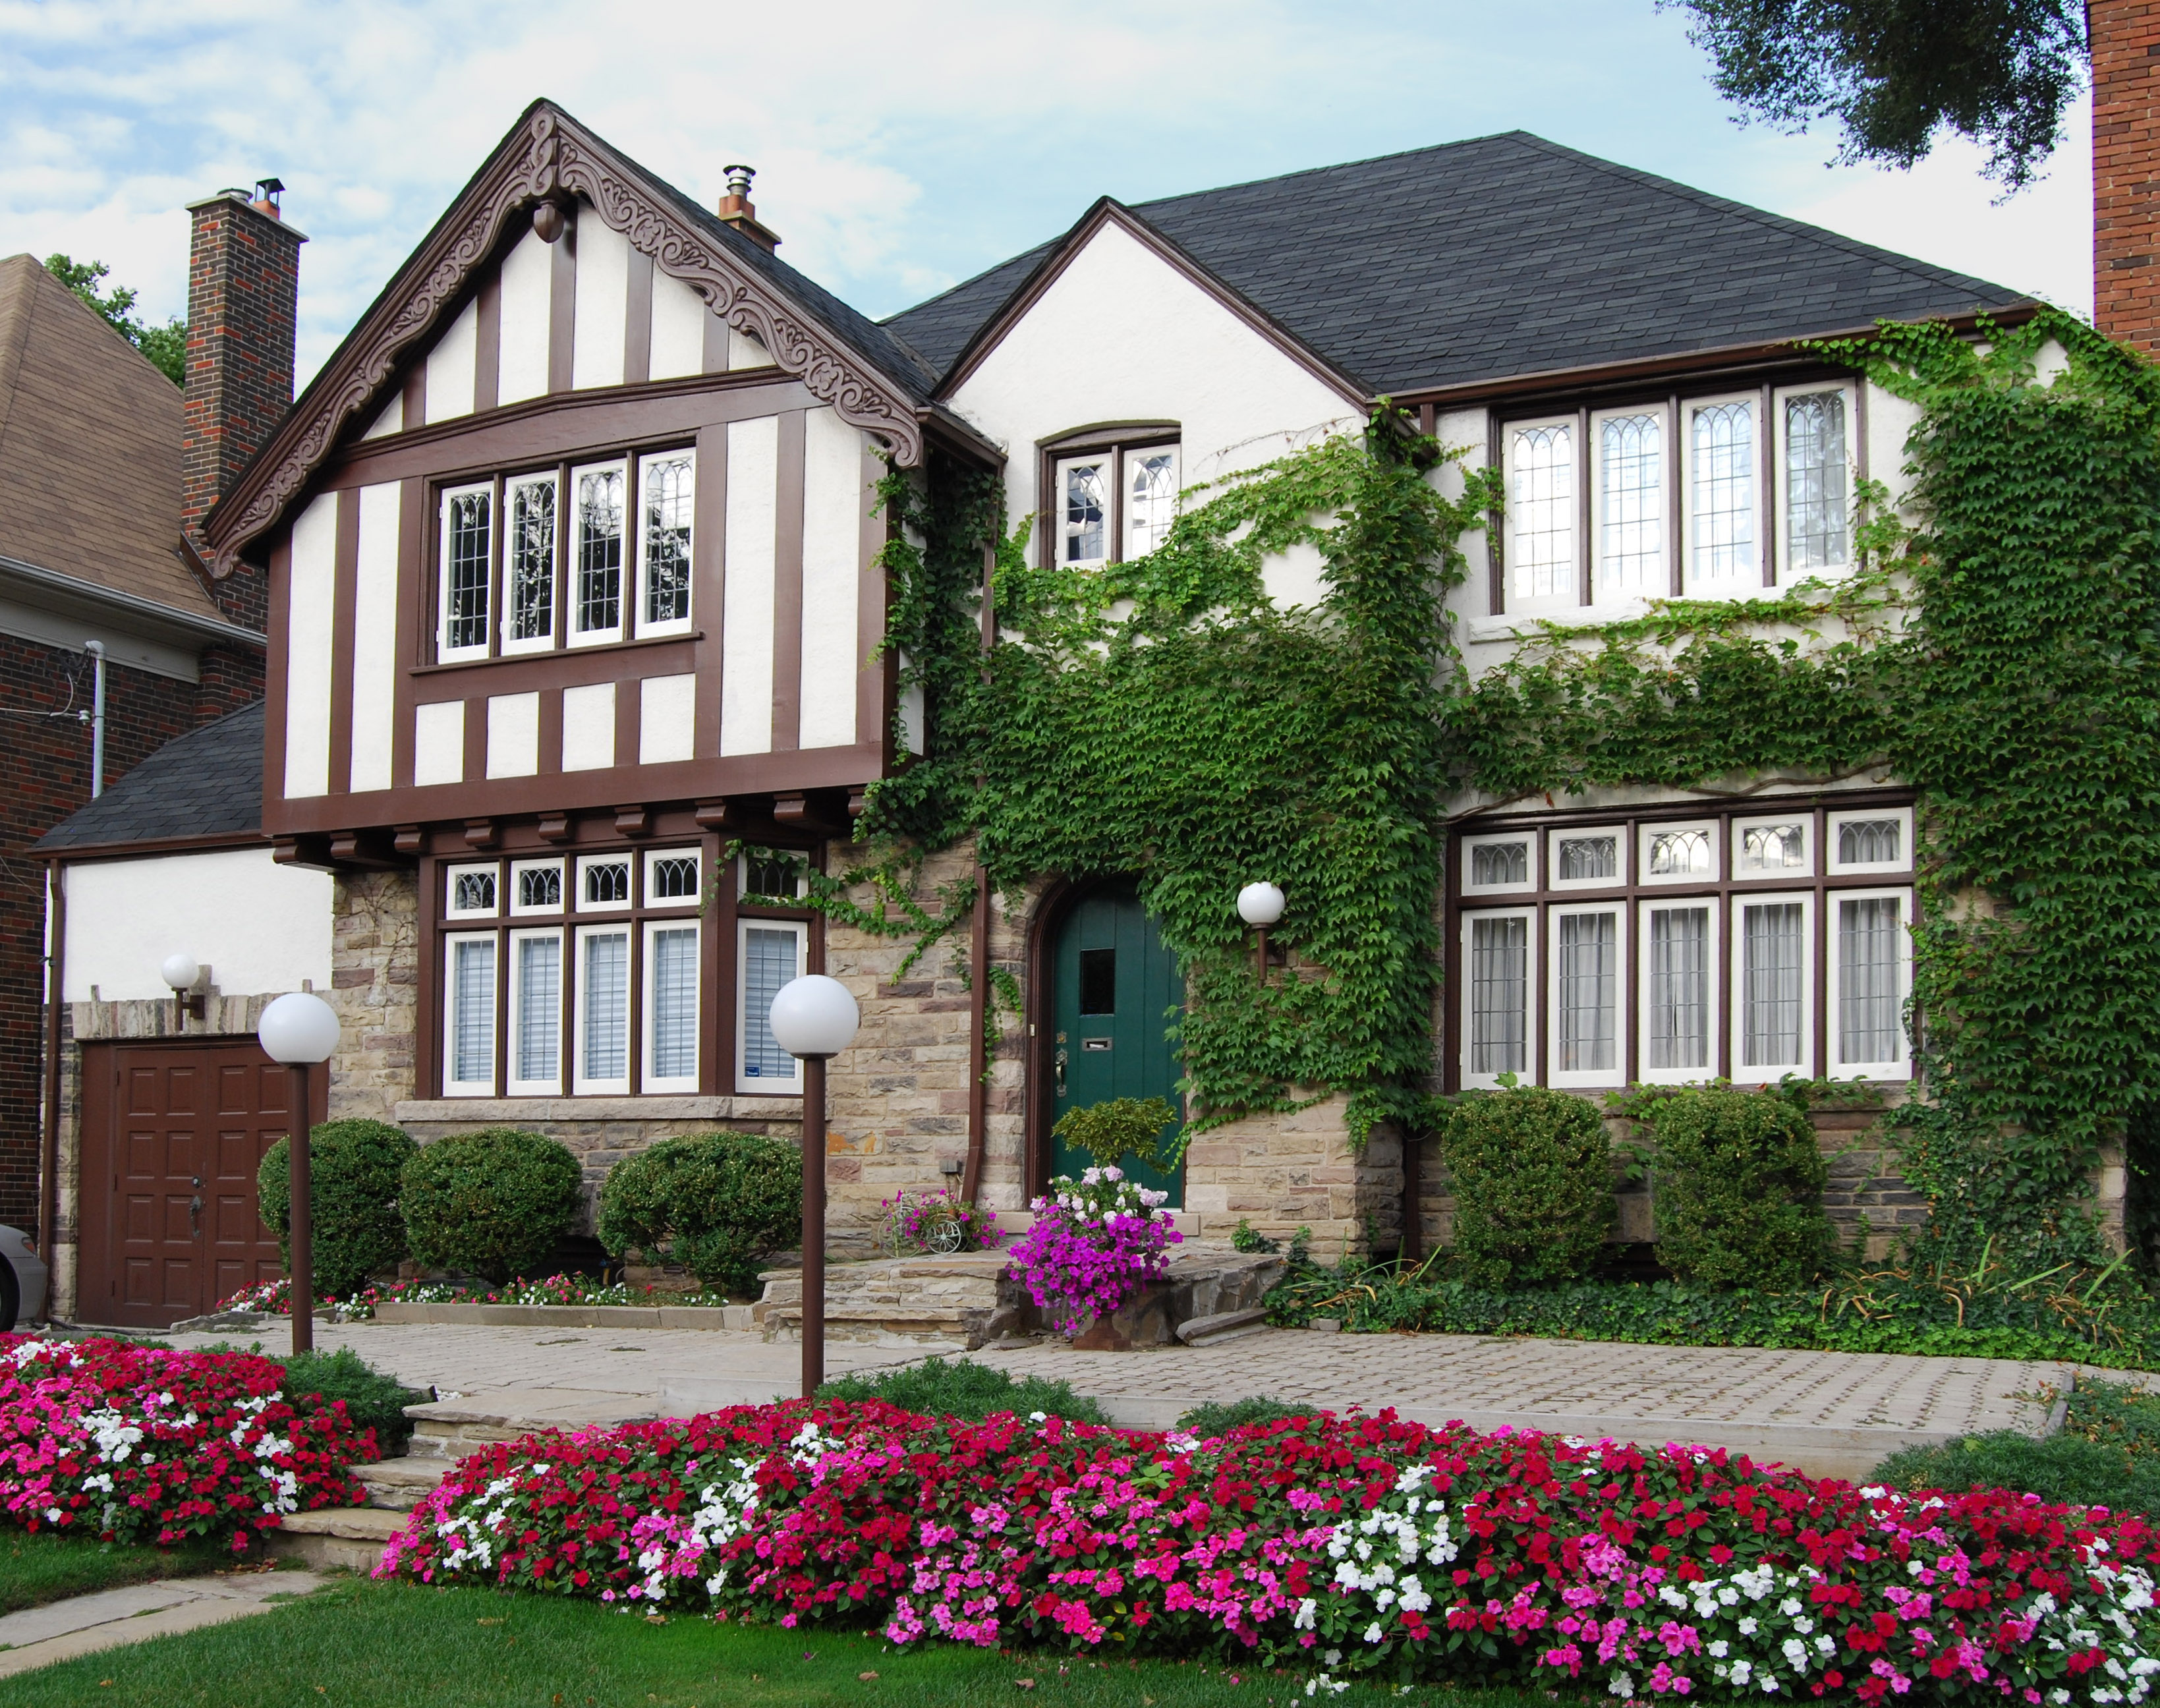 A tudor style house with brown trim, green ivy, and pink flowerbeds.